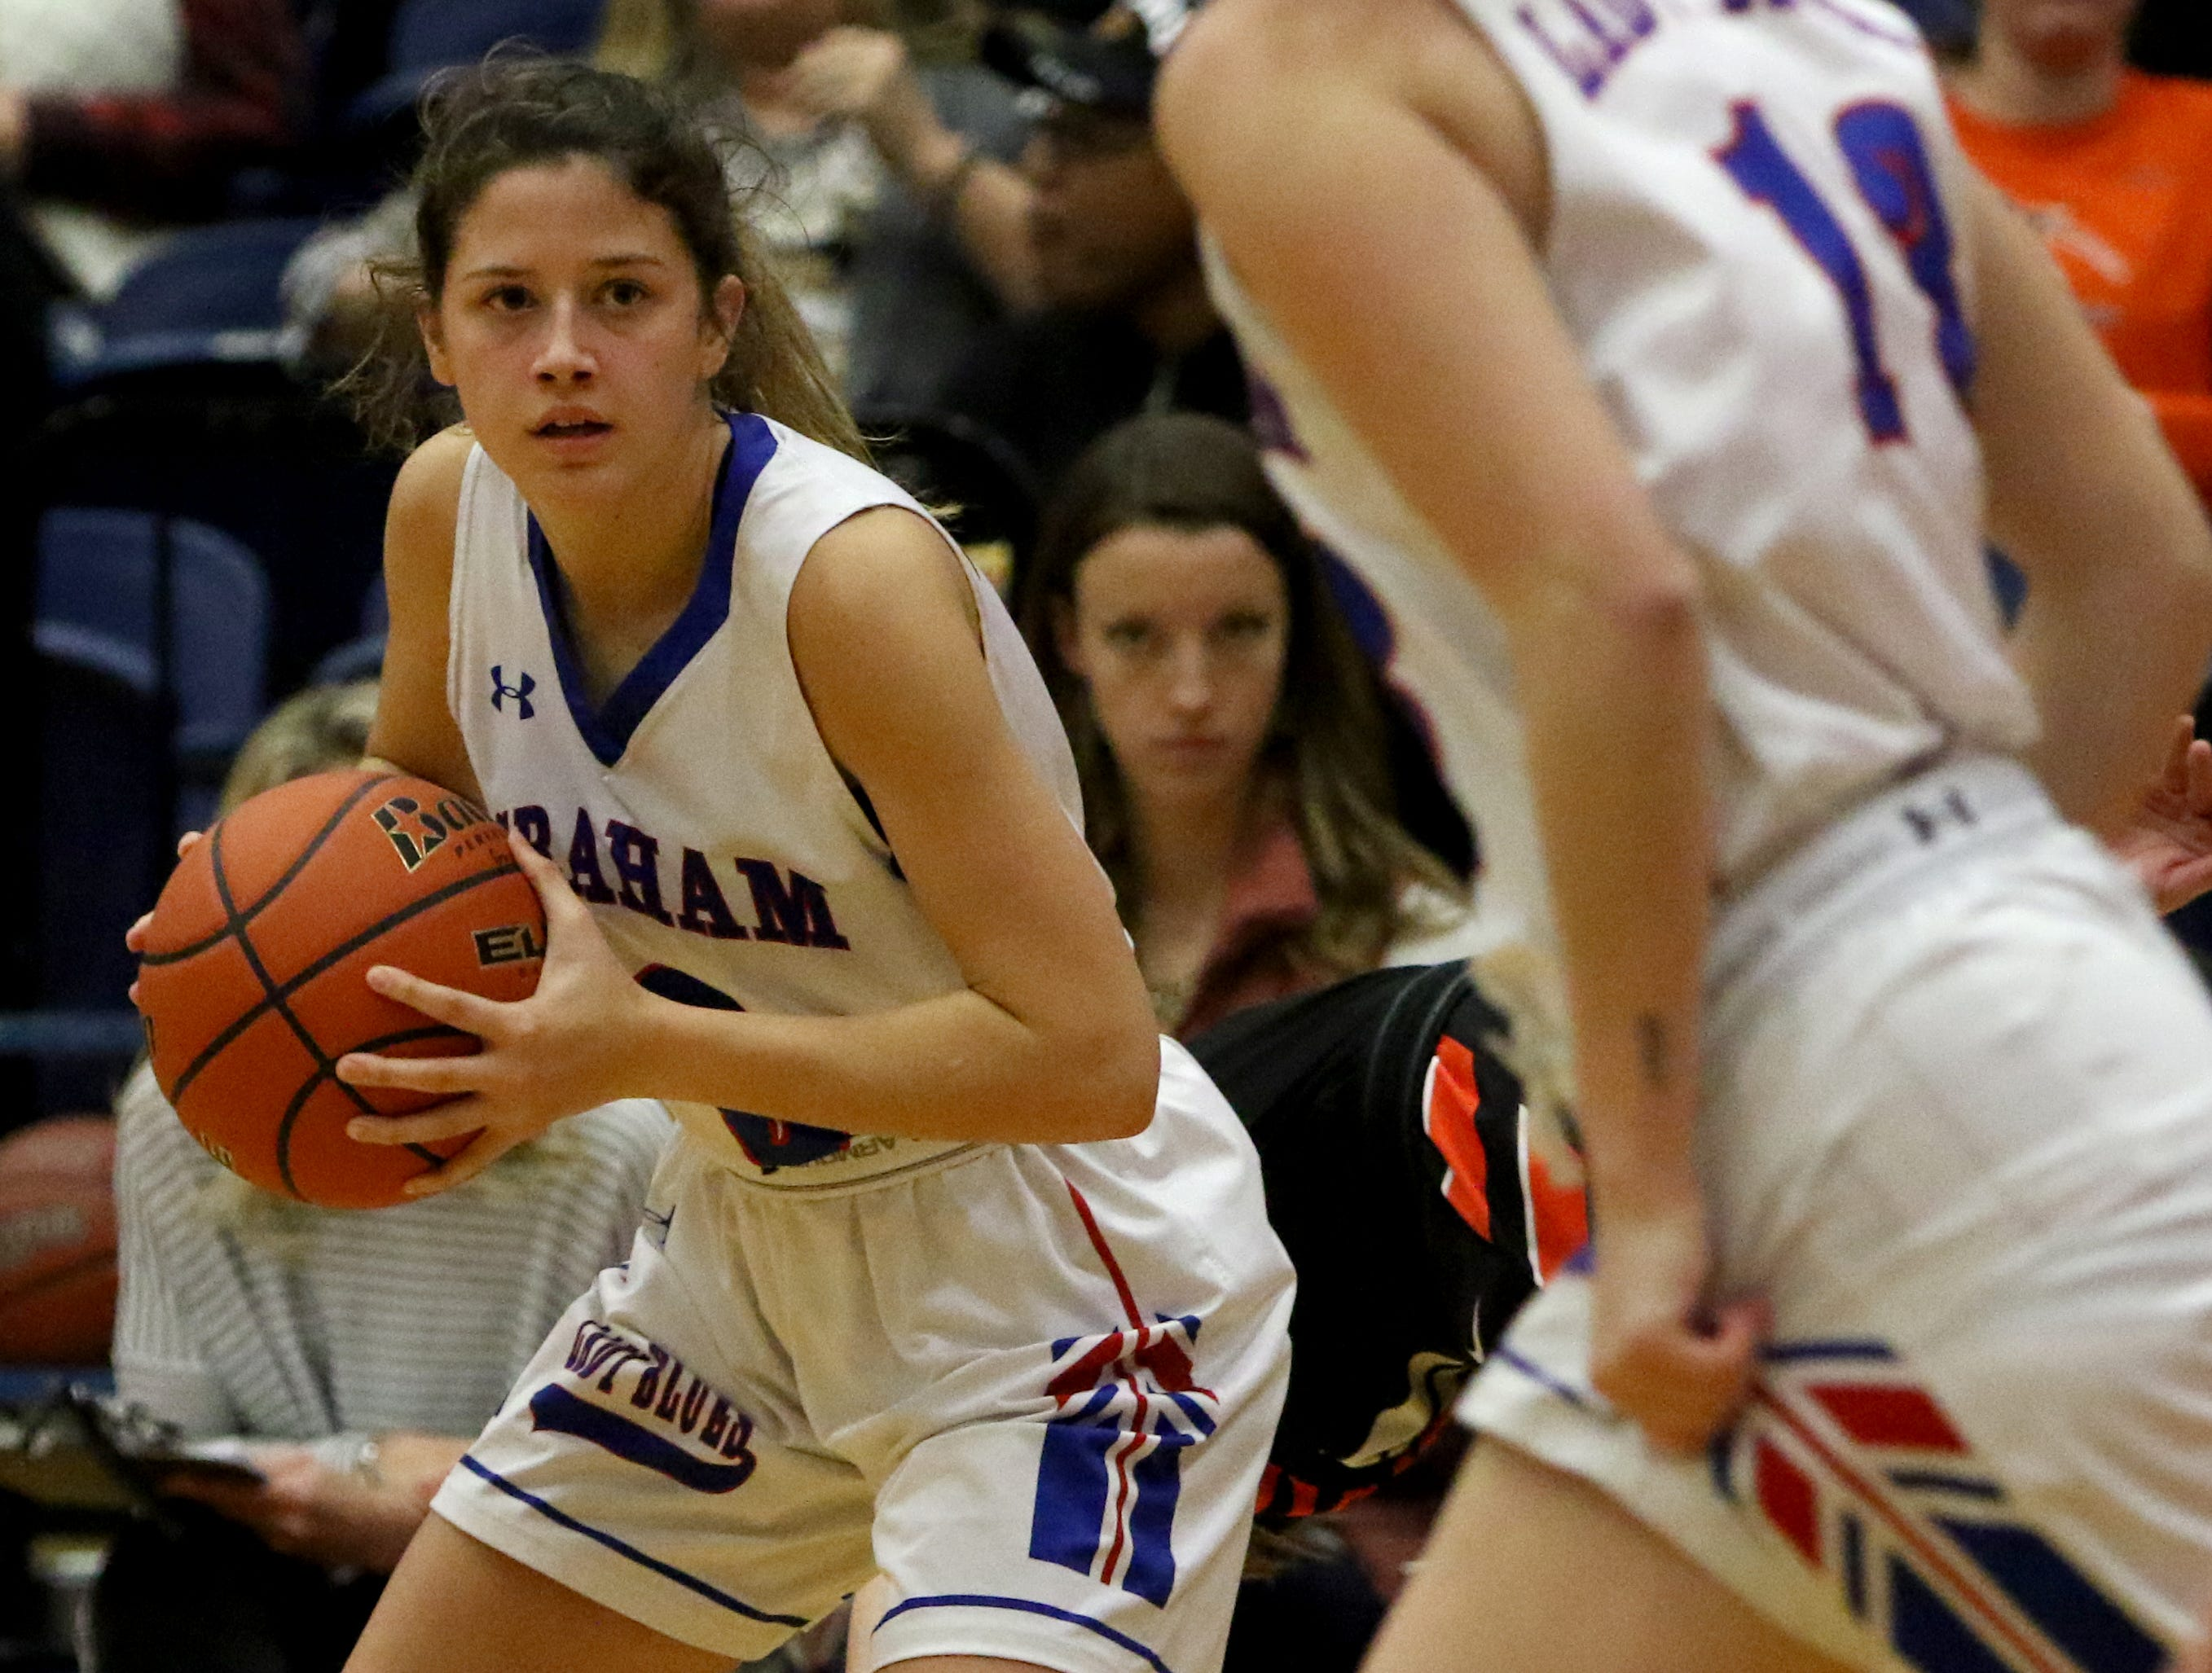 Graham's Michelle Delong looks to a teammate after getting the rebound in the game against Burkburnett Friday, Jan. 4, 2019, in Graham. The Lady Blues defeated the Lady Bulldogs 51-33.